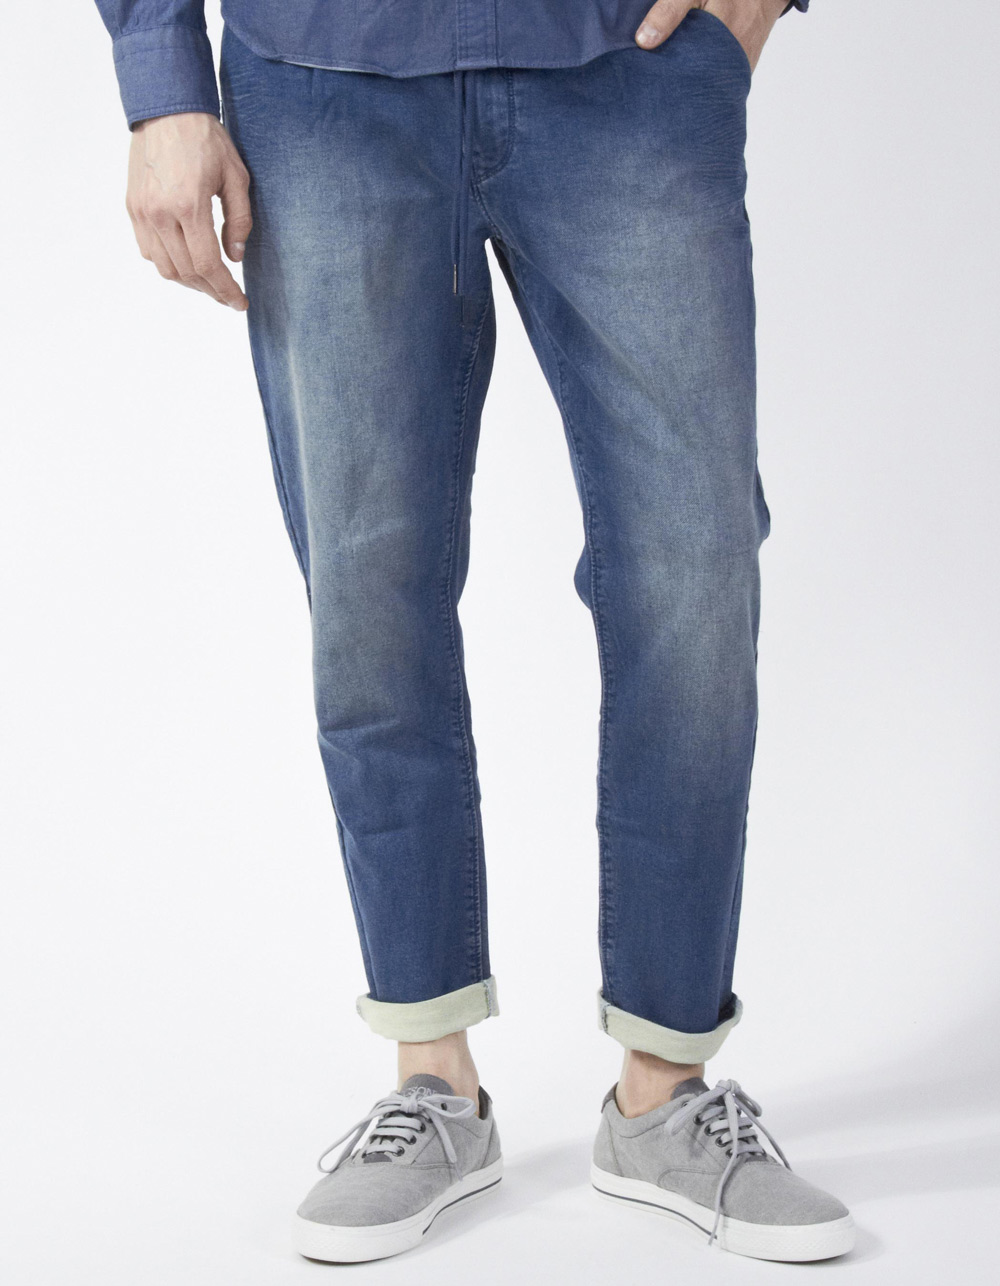 Denim trousers with darts